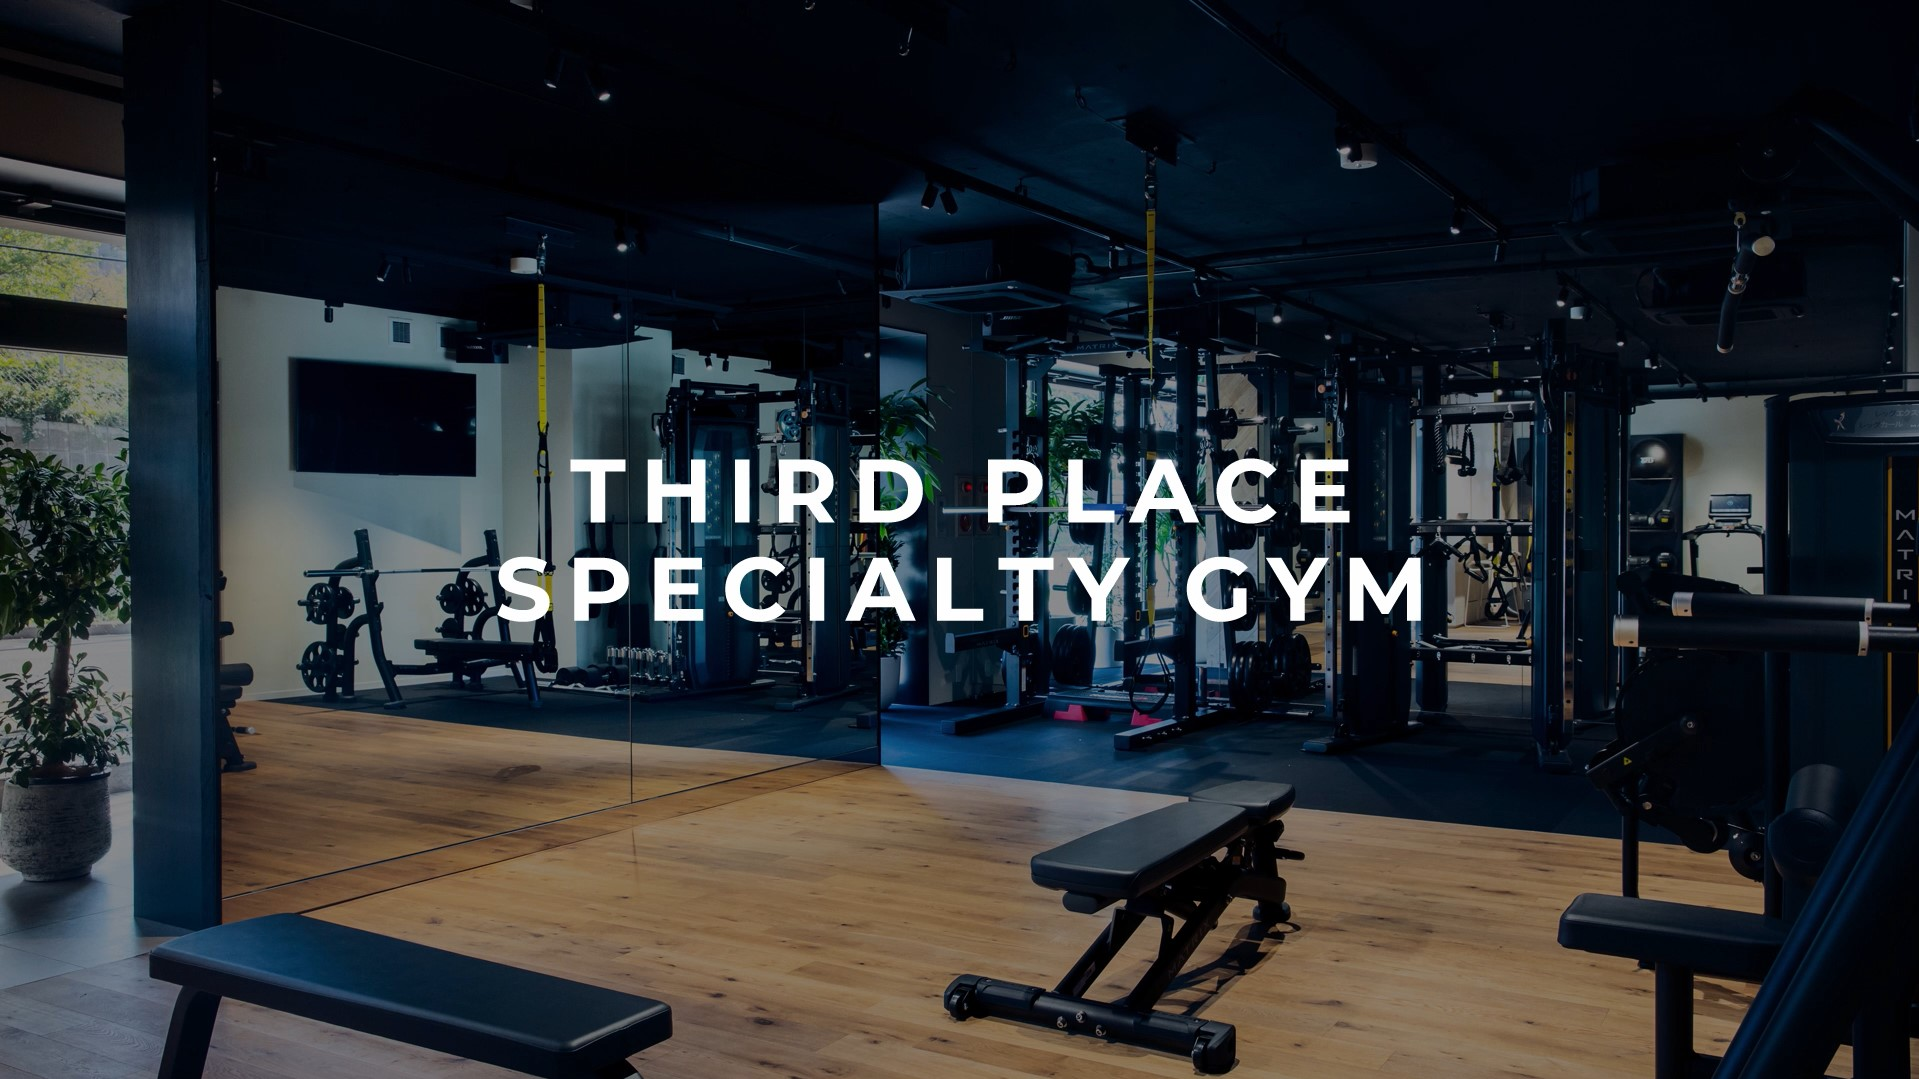 THIRD PLACE SPECIALITY GYM